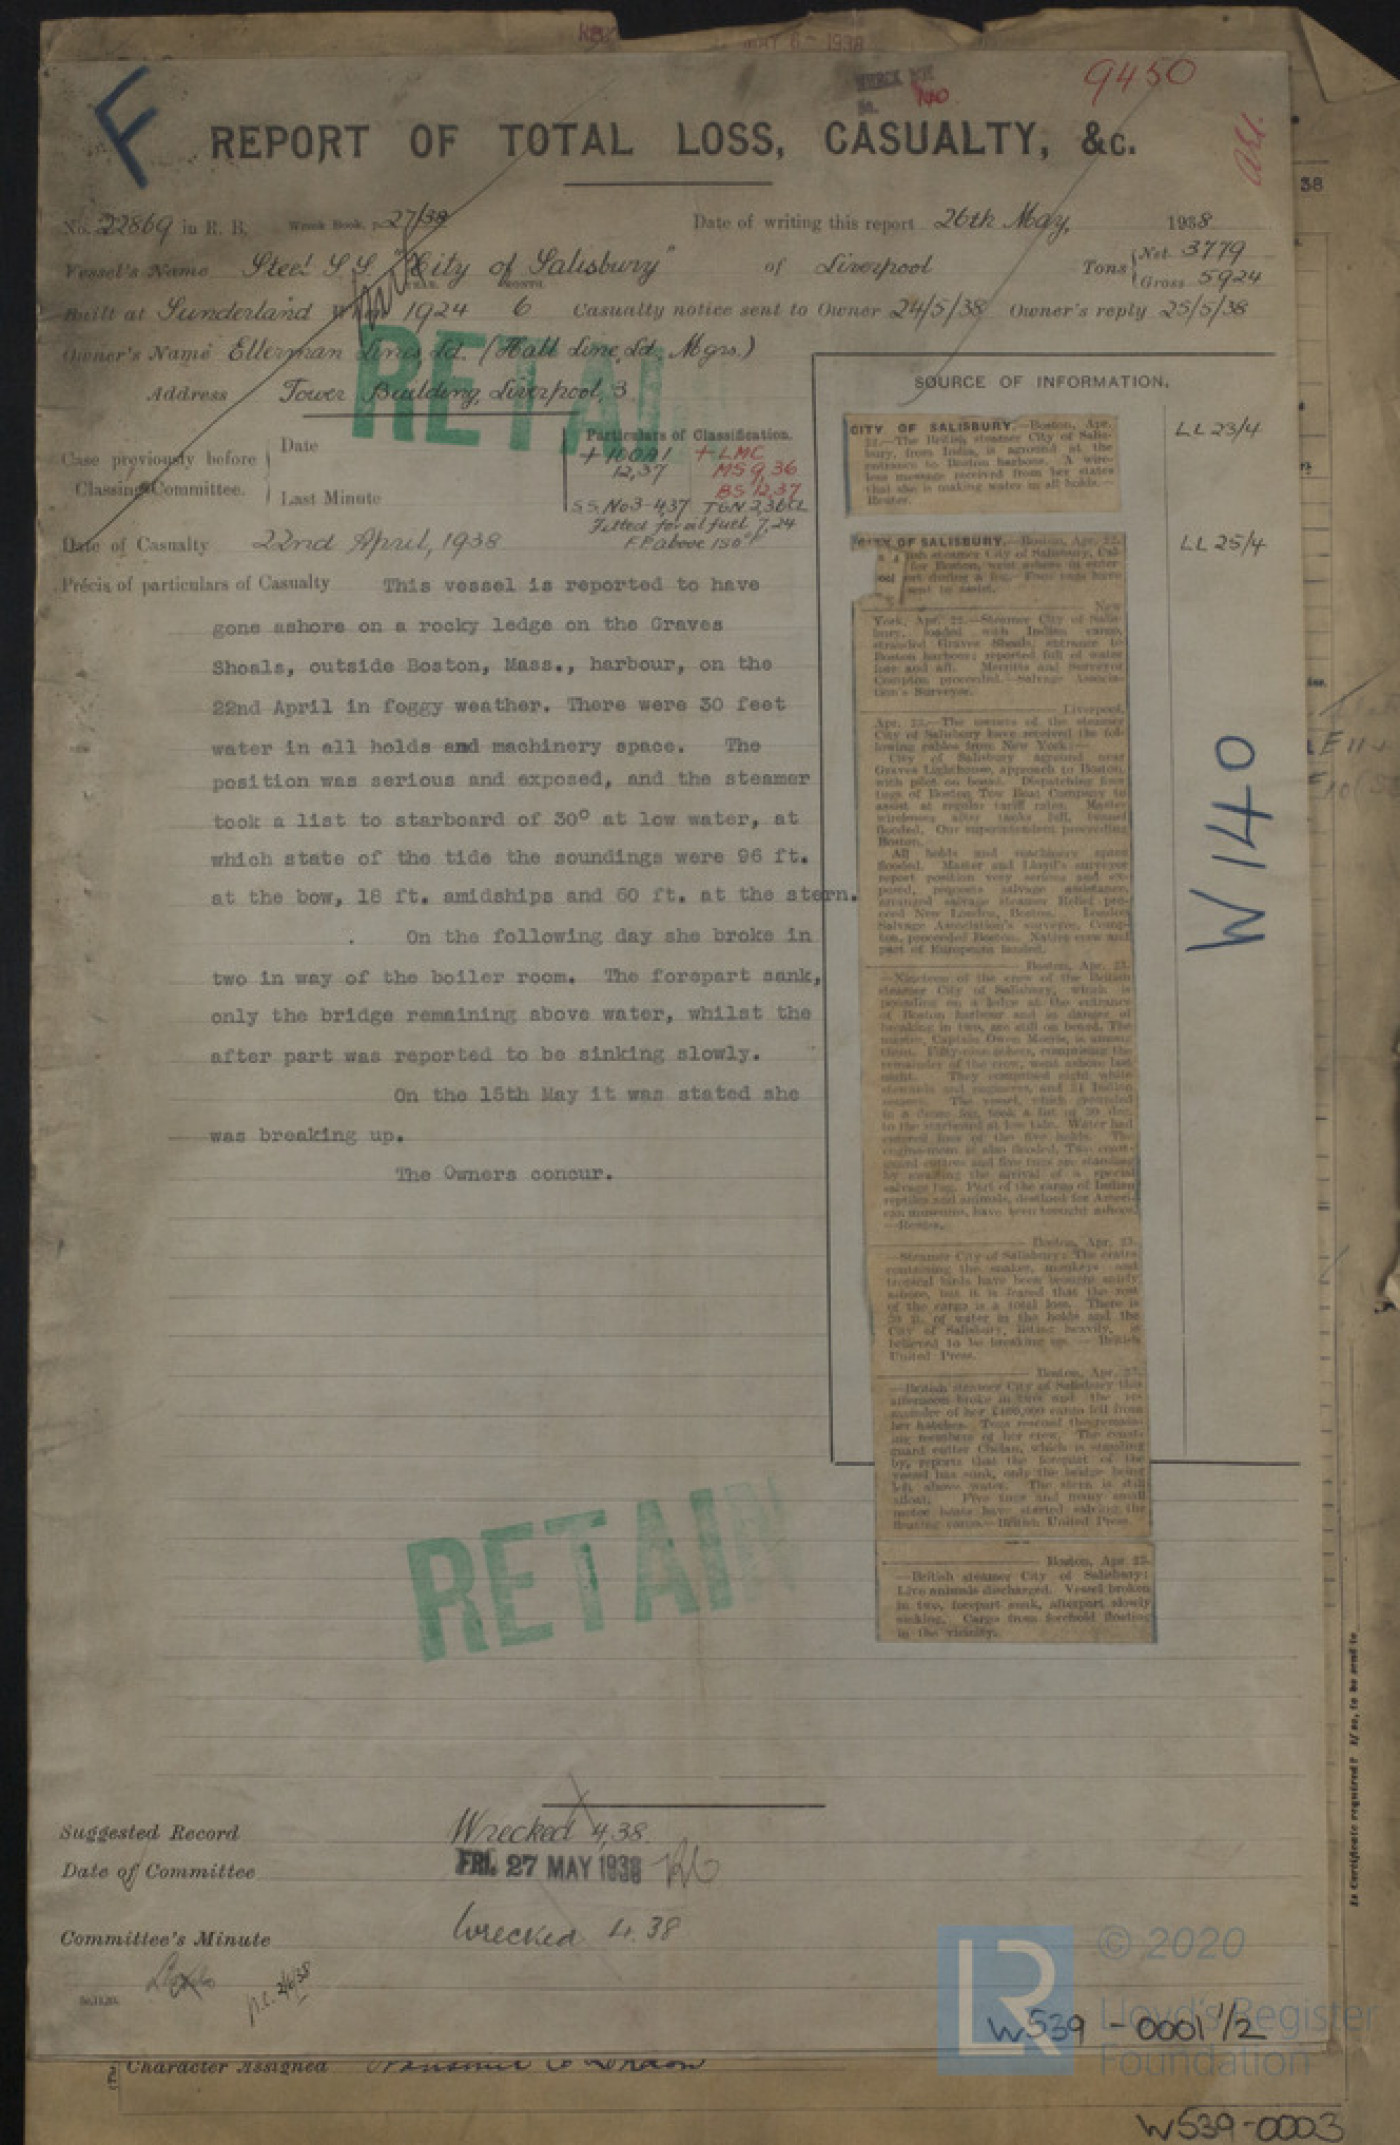 Report of Total Loss, Casualty, &c for City of Salisbury, 26th May 1938